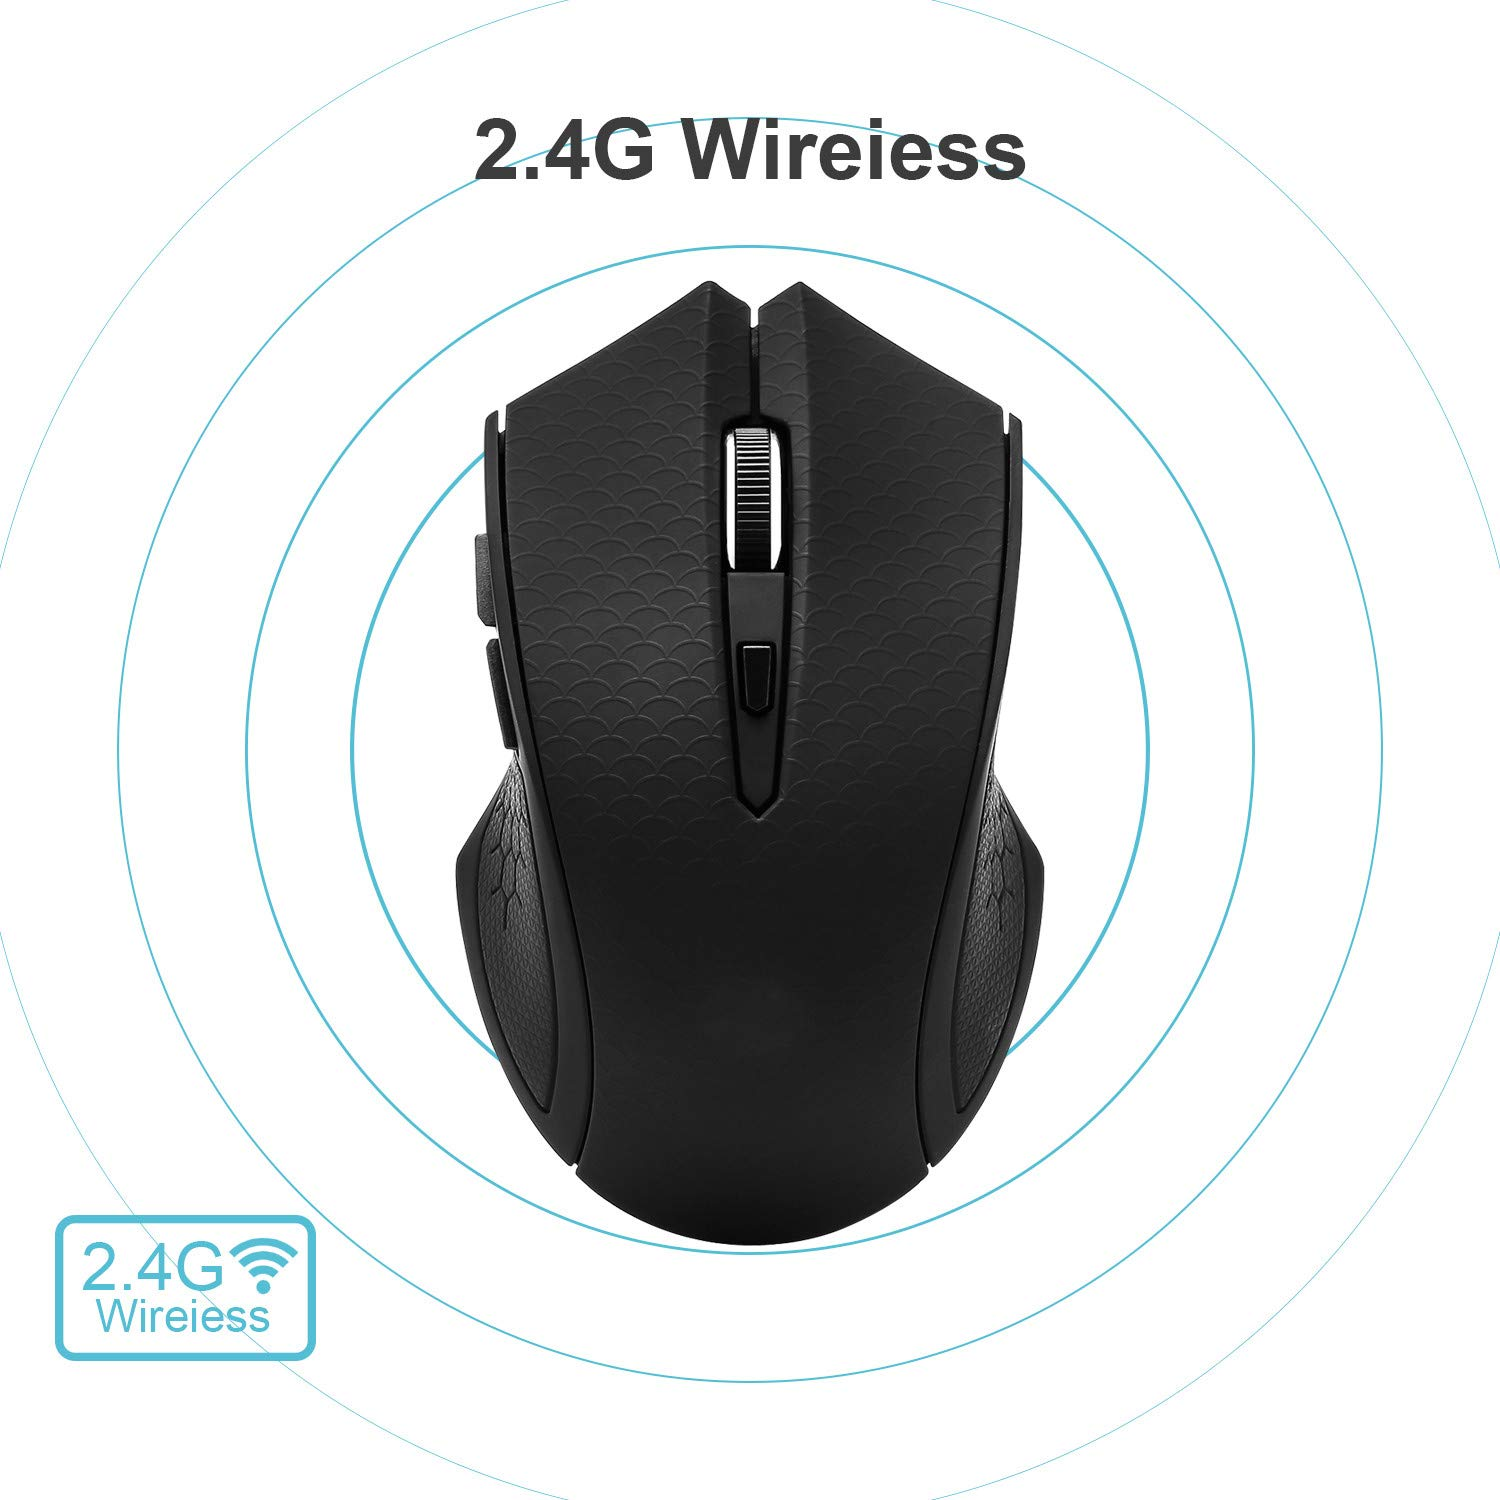 Silent Click Optical Mice 3 Adjustable DPI Levels with USB Receiver Noiseless Wireless Mouse